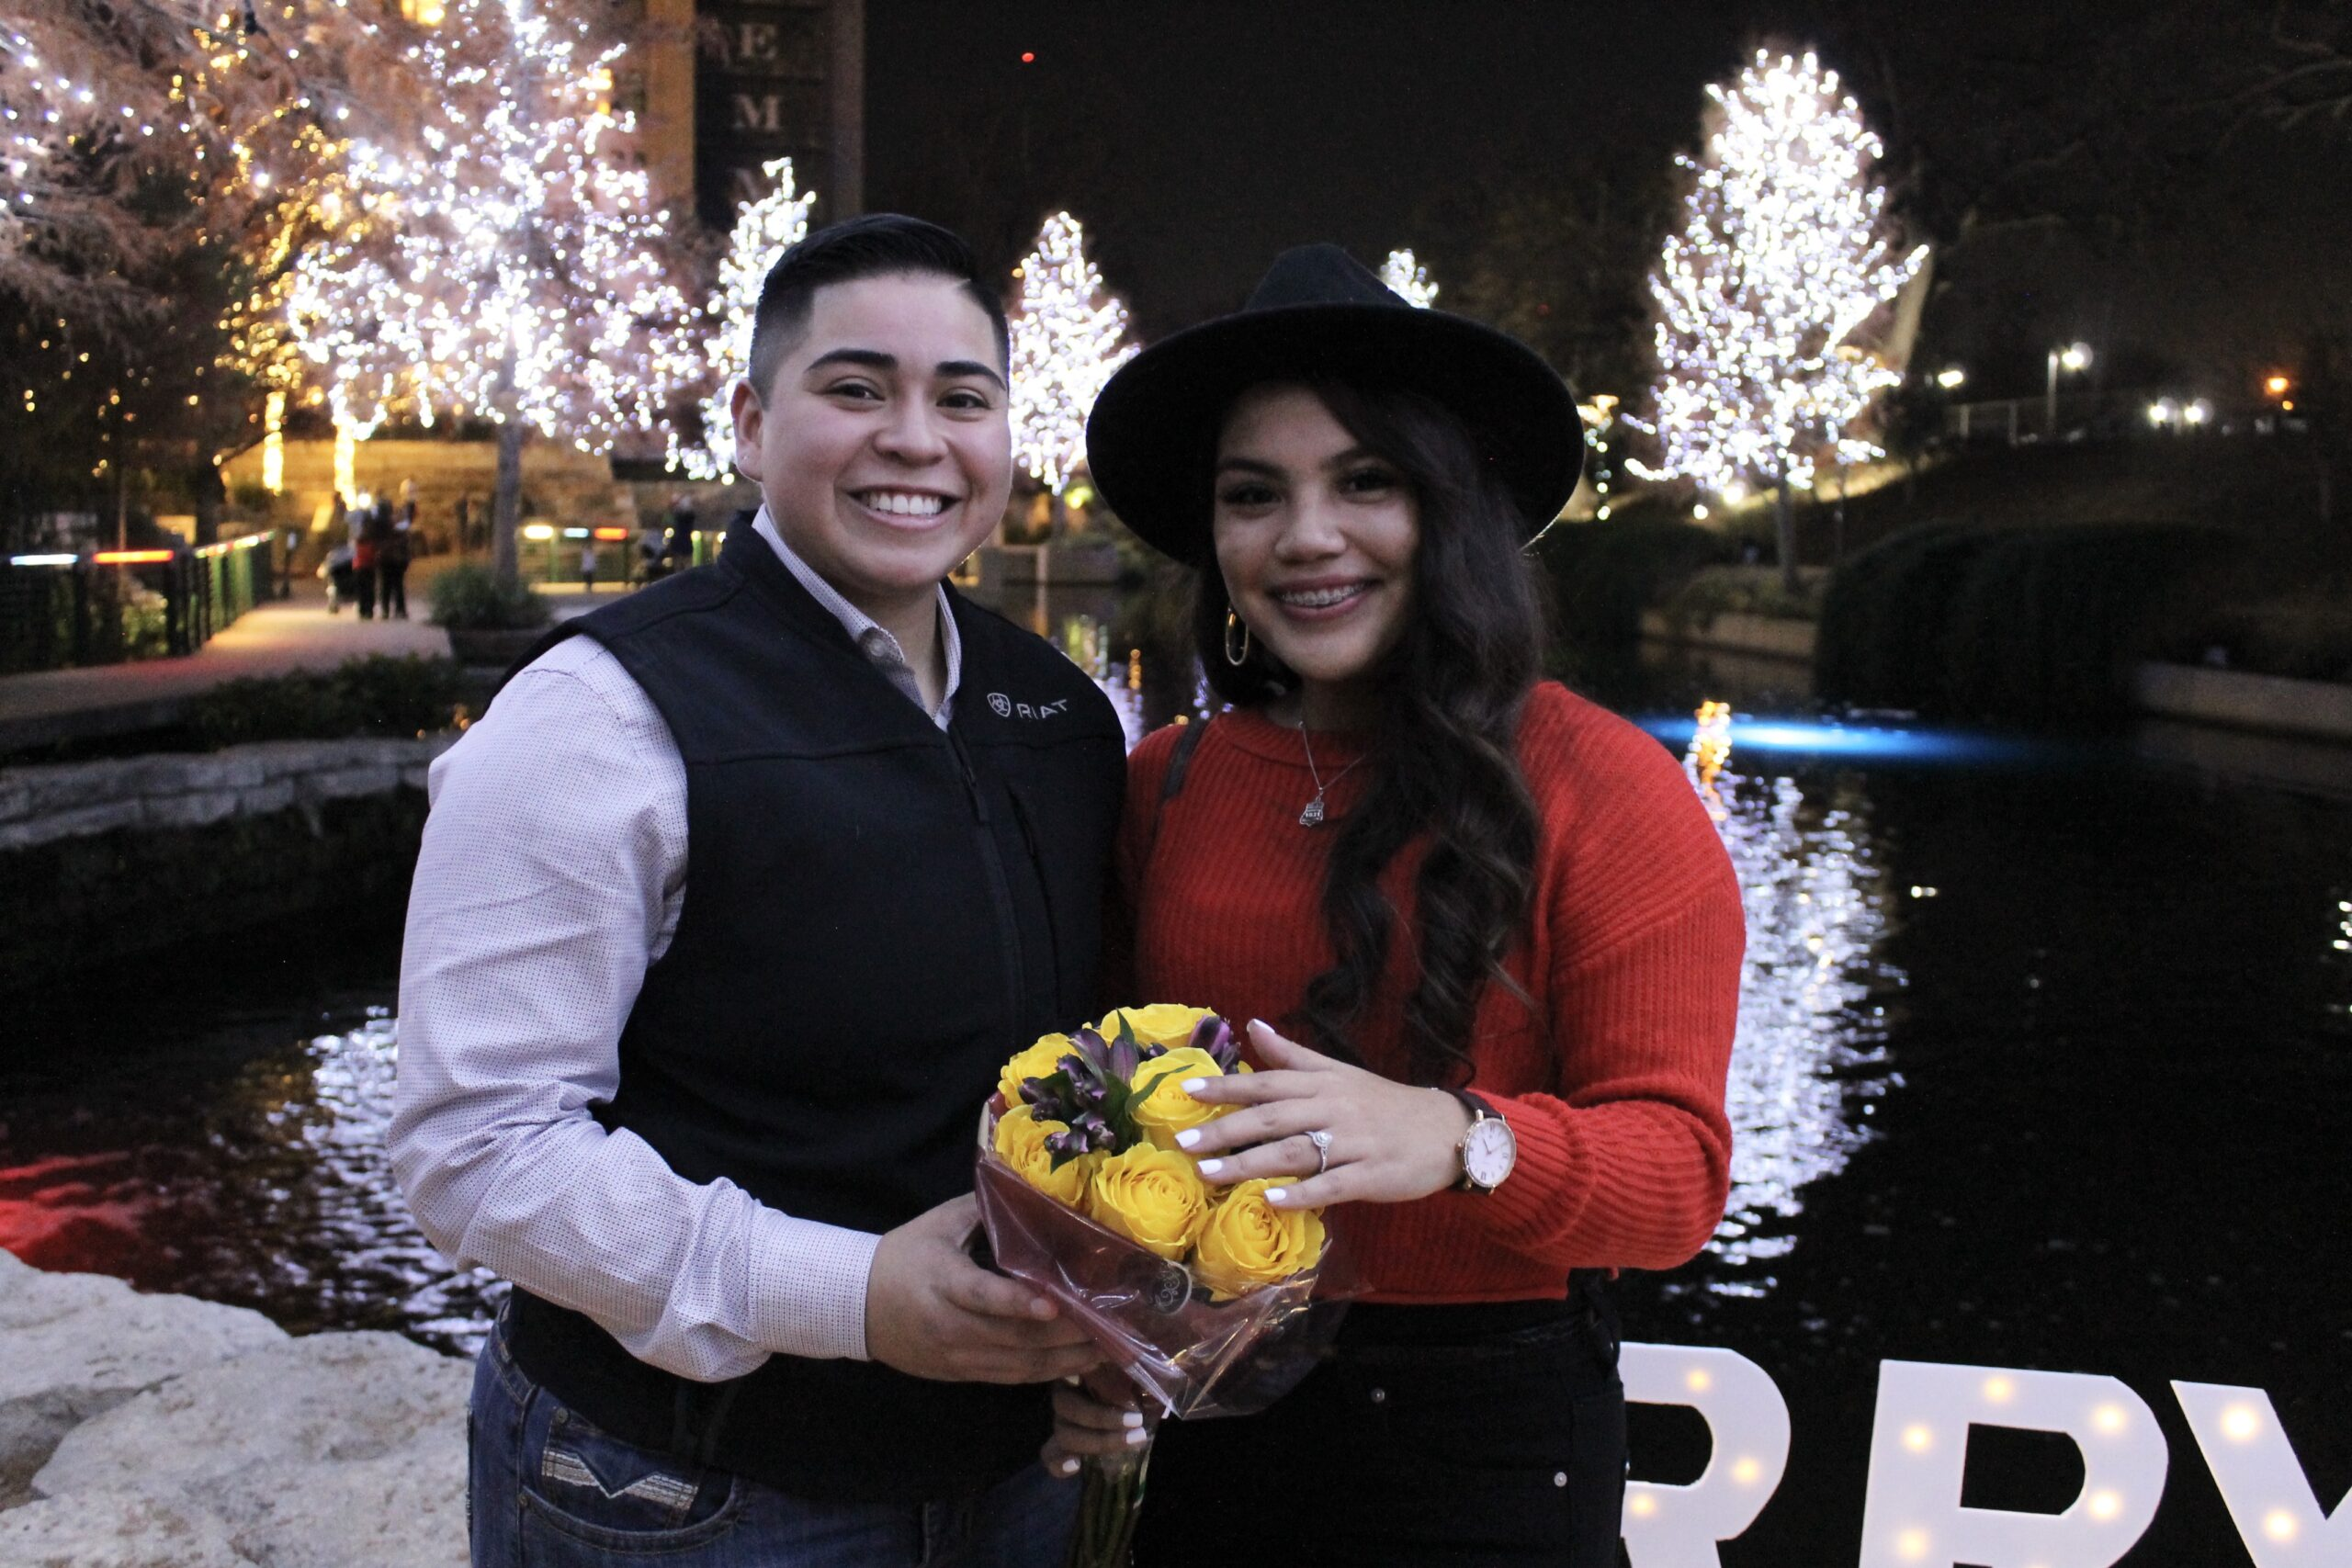 San Antonio Weddings couple, Caitlin and Sierra, get #engagedinsa